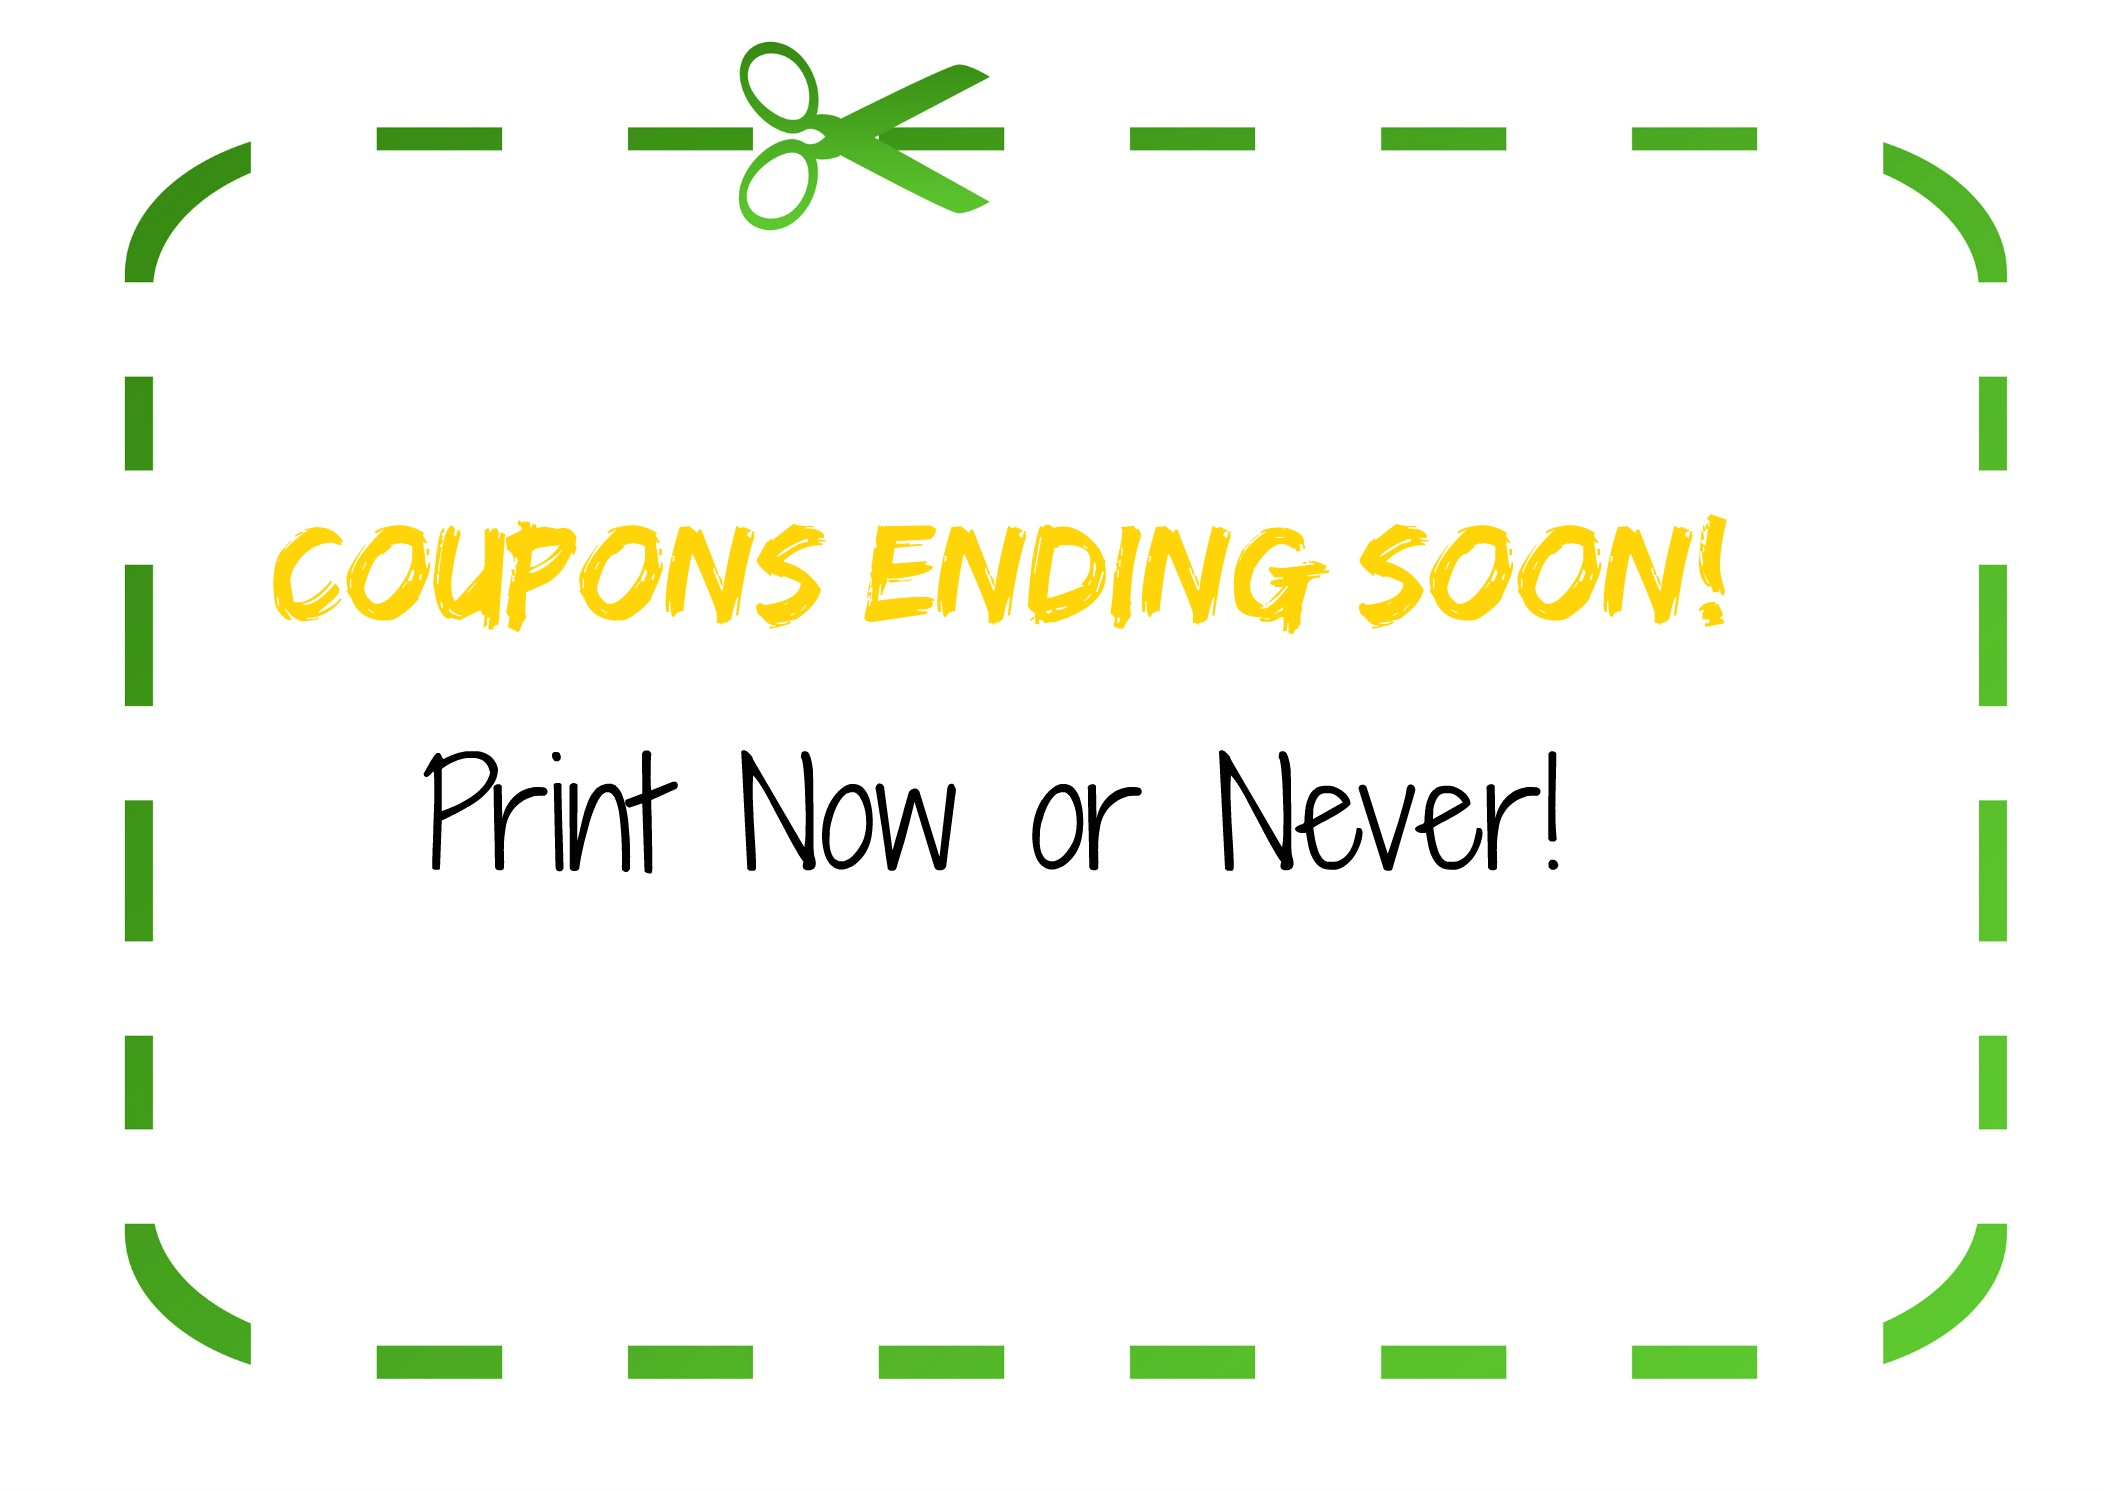 coupon round up list of coupons ending soon frugal finds blank green eco coupon scissors isolated on white background